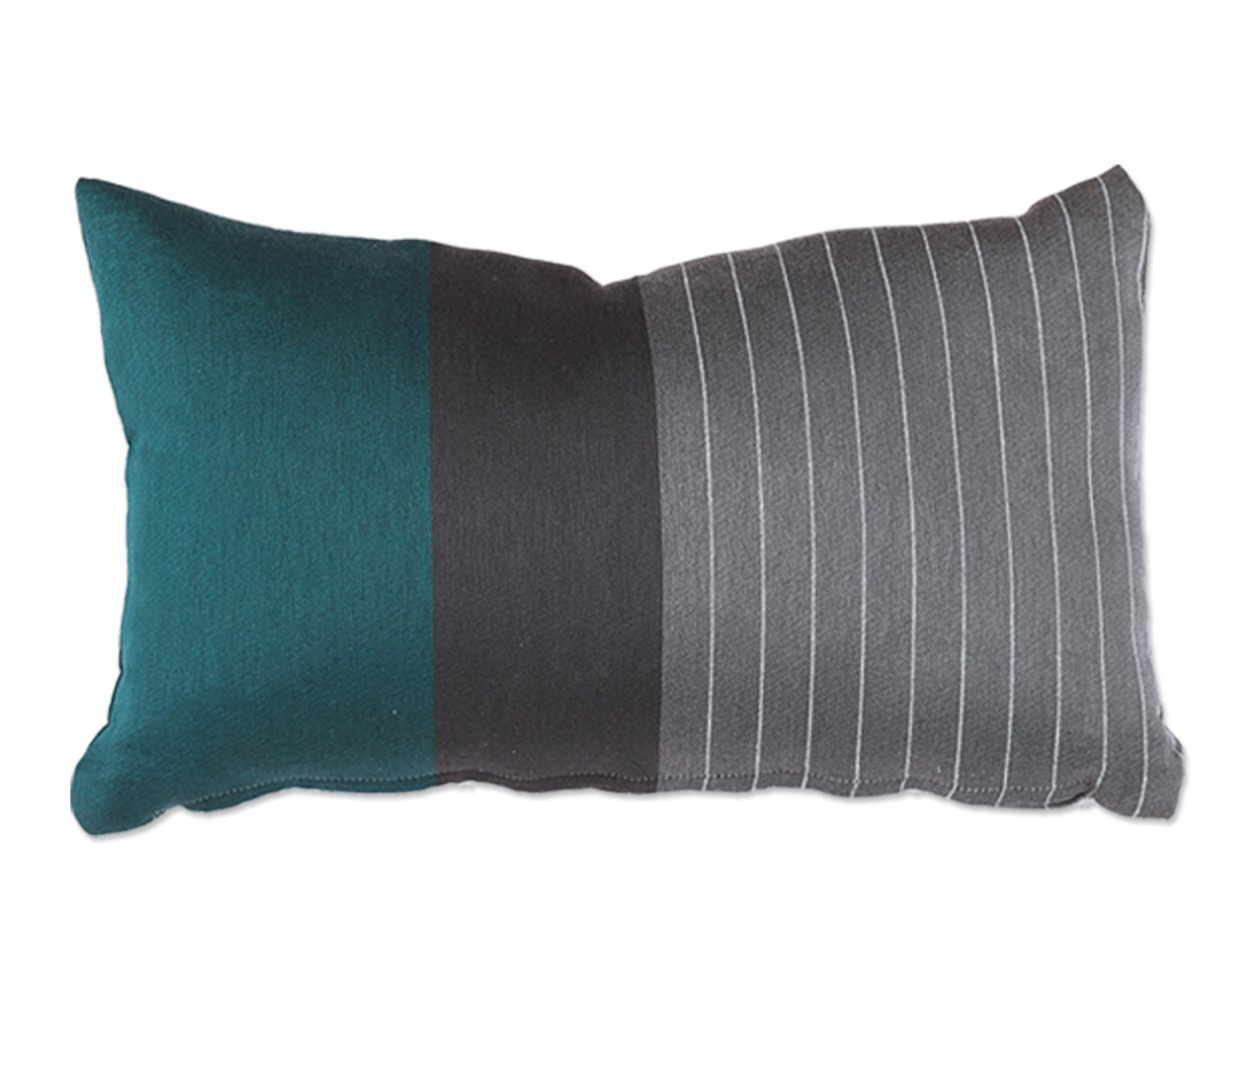 kassel-pillow-grey-large